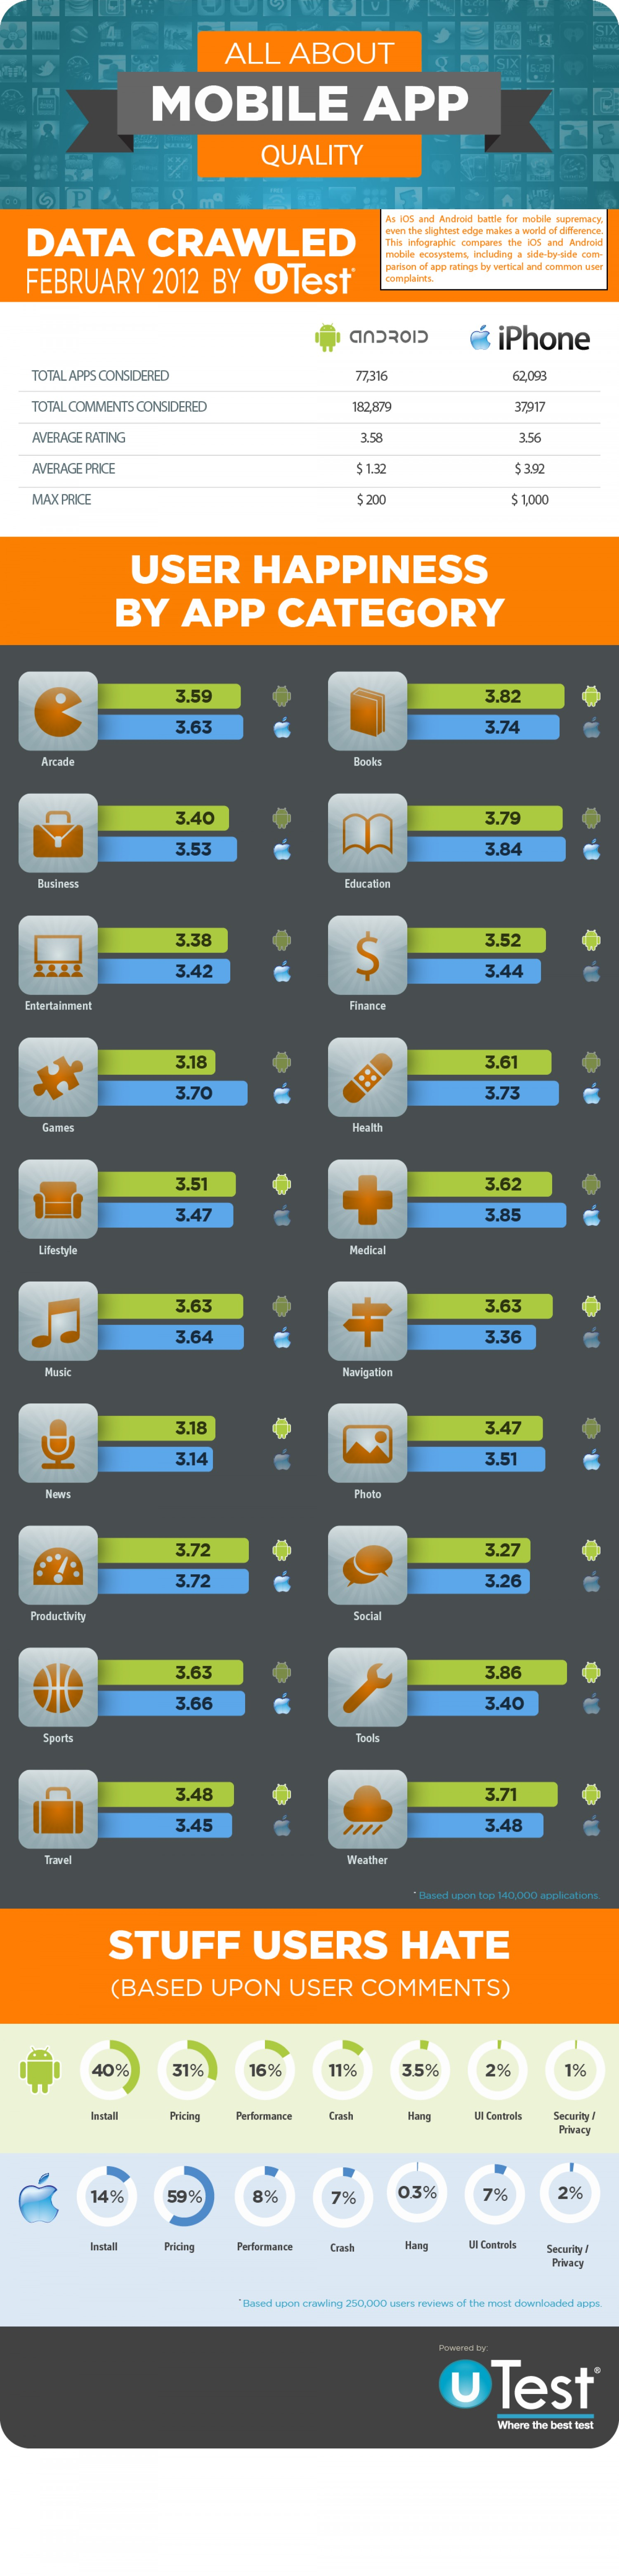 6. Android Vs iOS